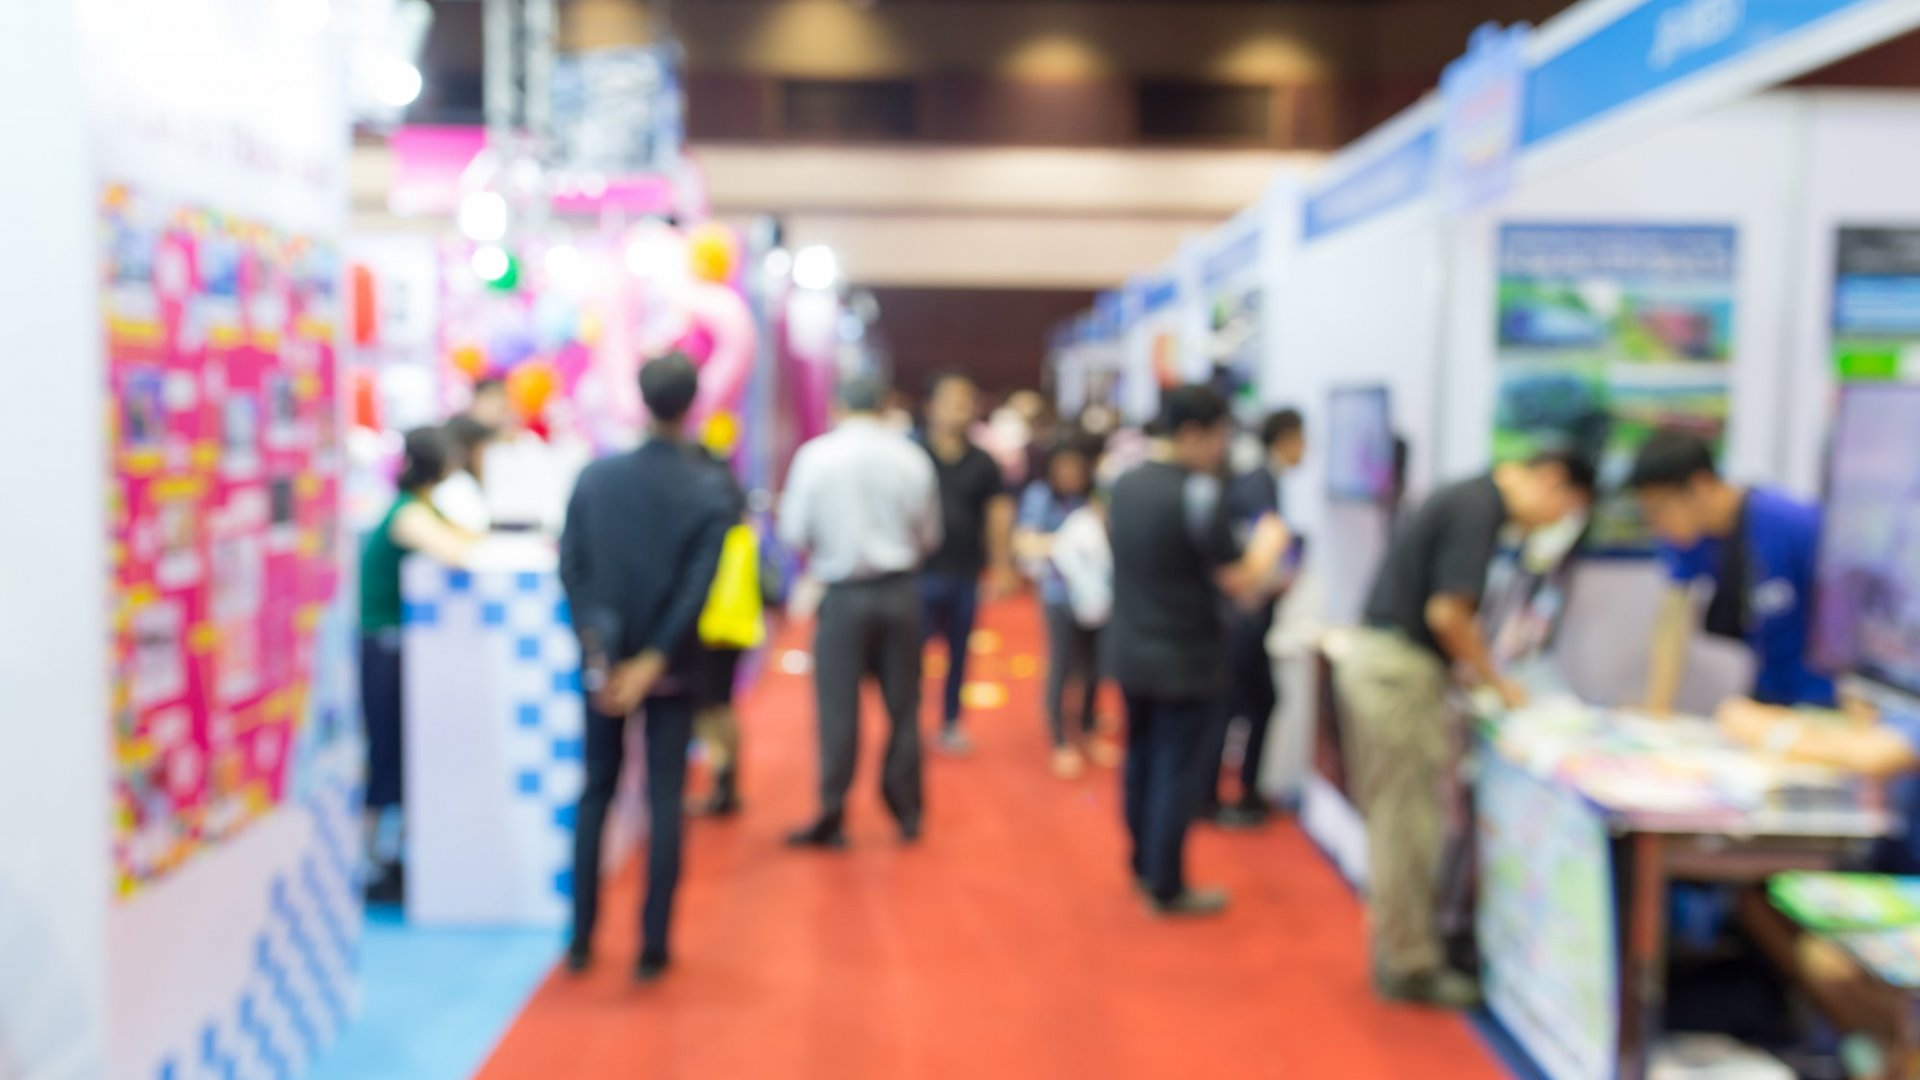 6 Dos and Don'ts of Conference Networking